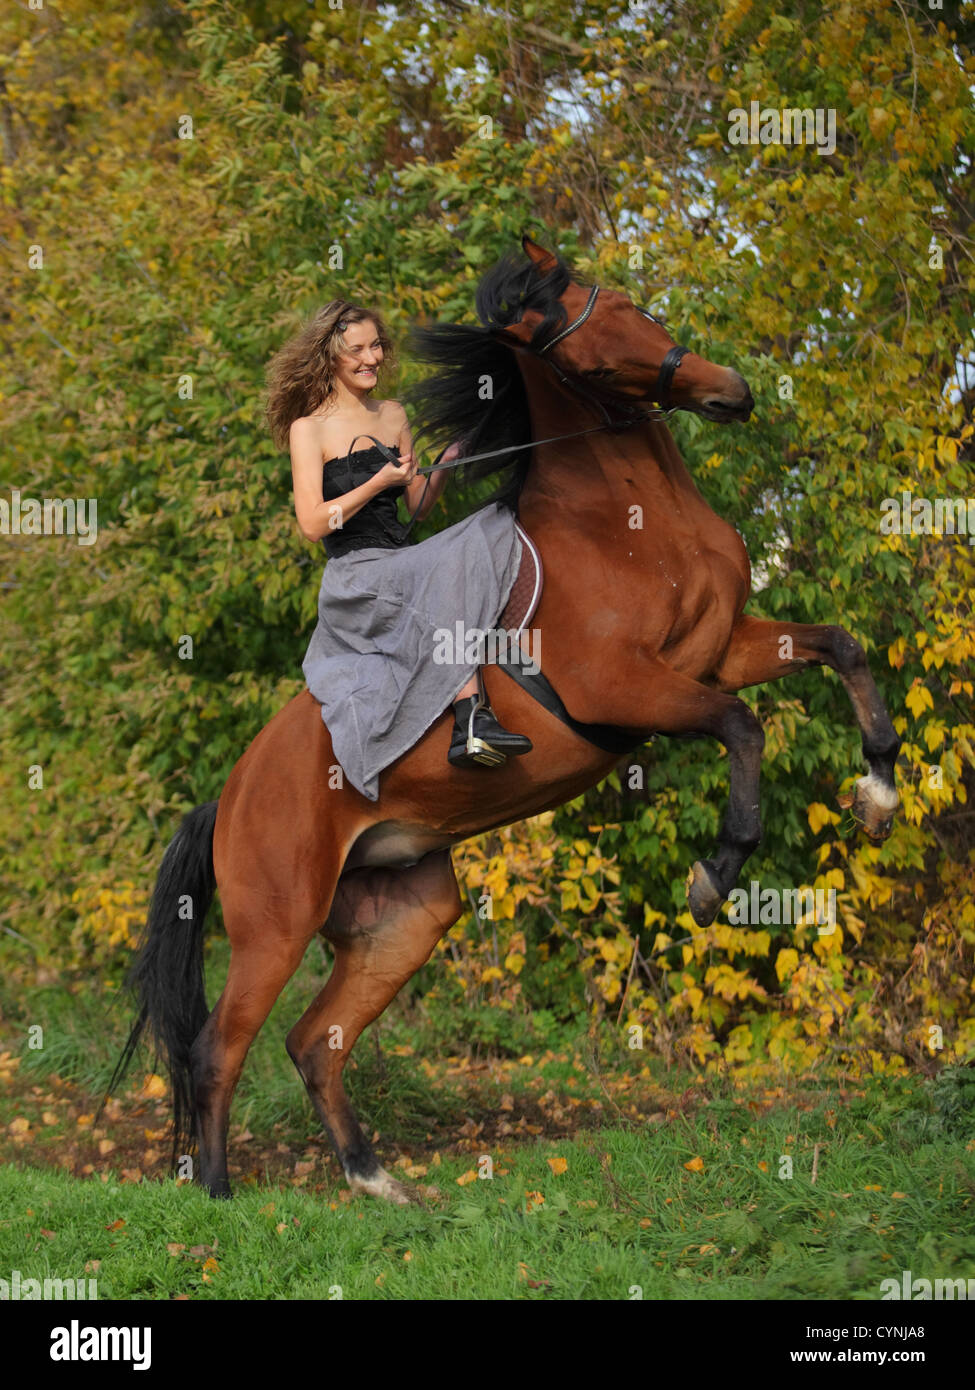 Cowgirl in vintage dress sitting on a rearing horse - Stock Image